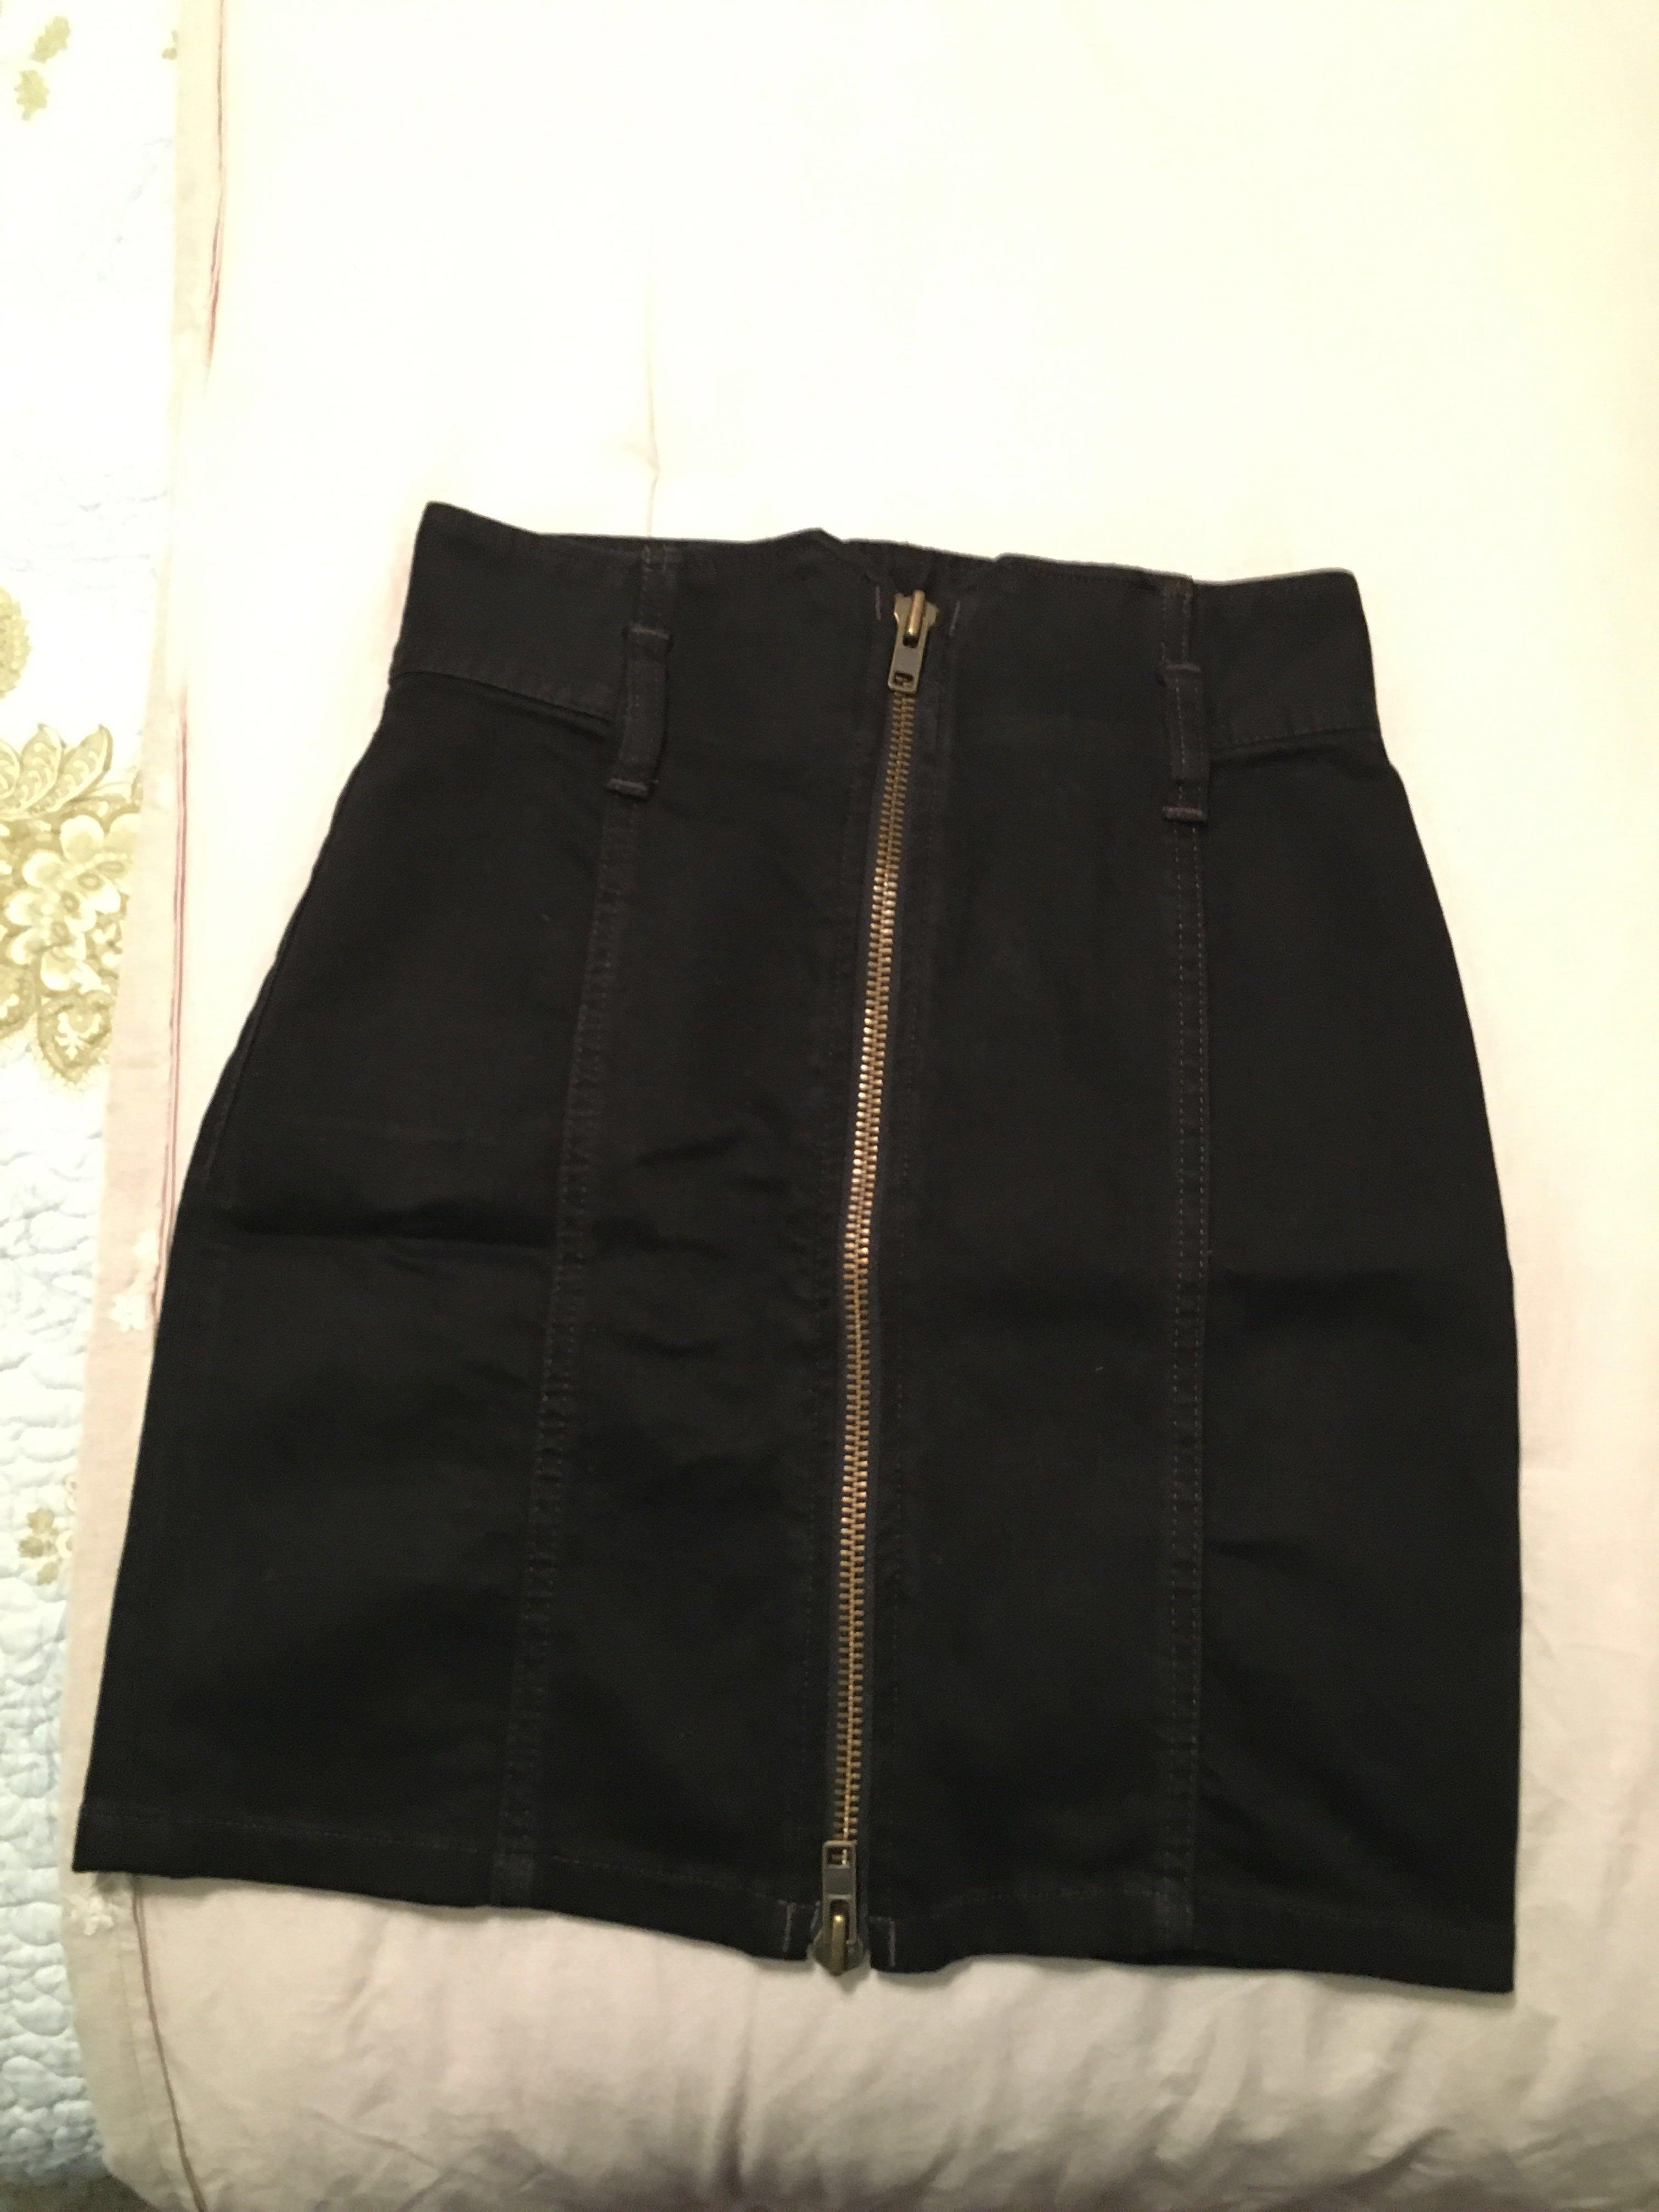 WILFRED High-Waisted Black Skirt (Size 2)